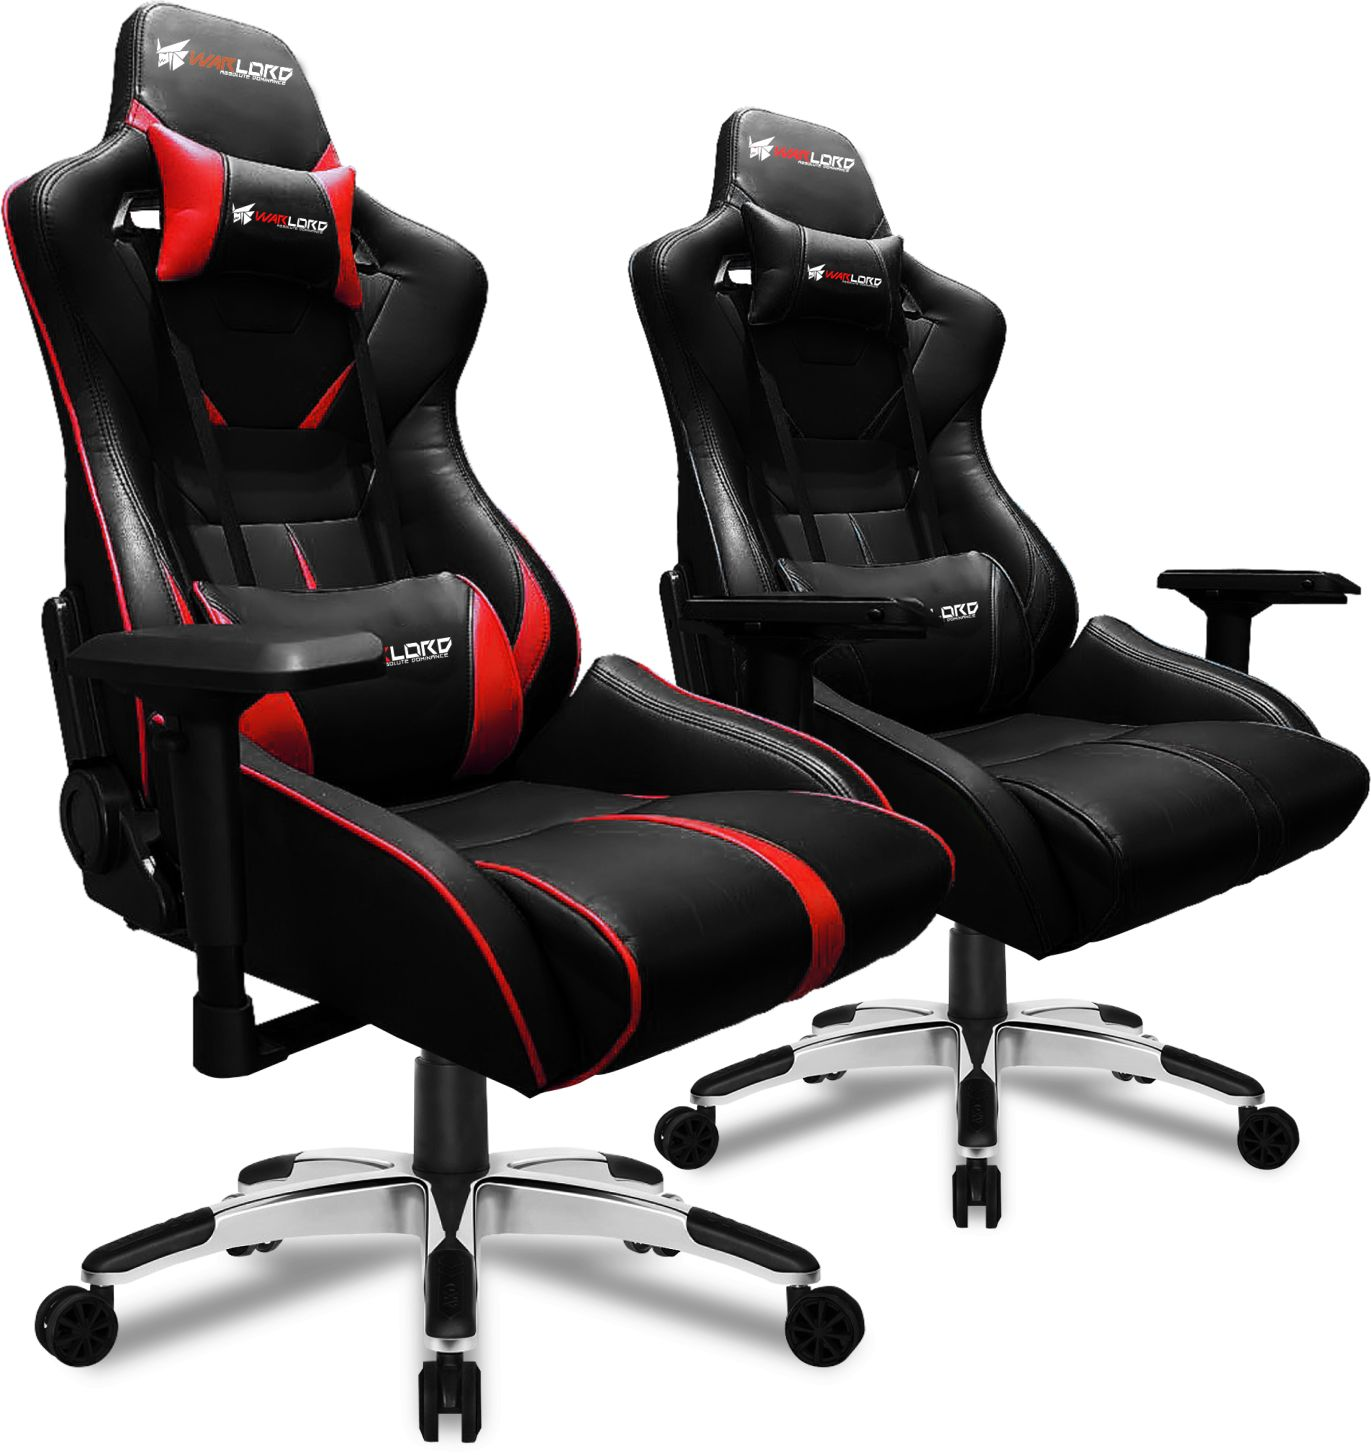 usa series product onylight chairz gaming chair crank clutch edition ad purple office